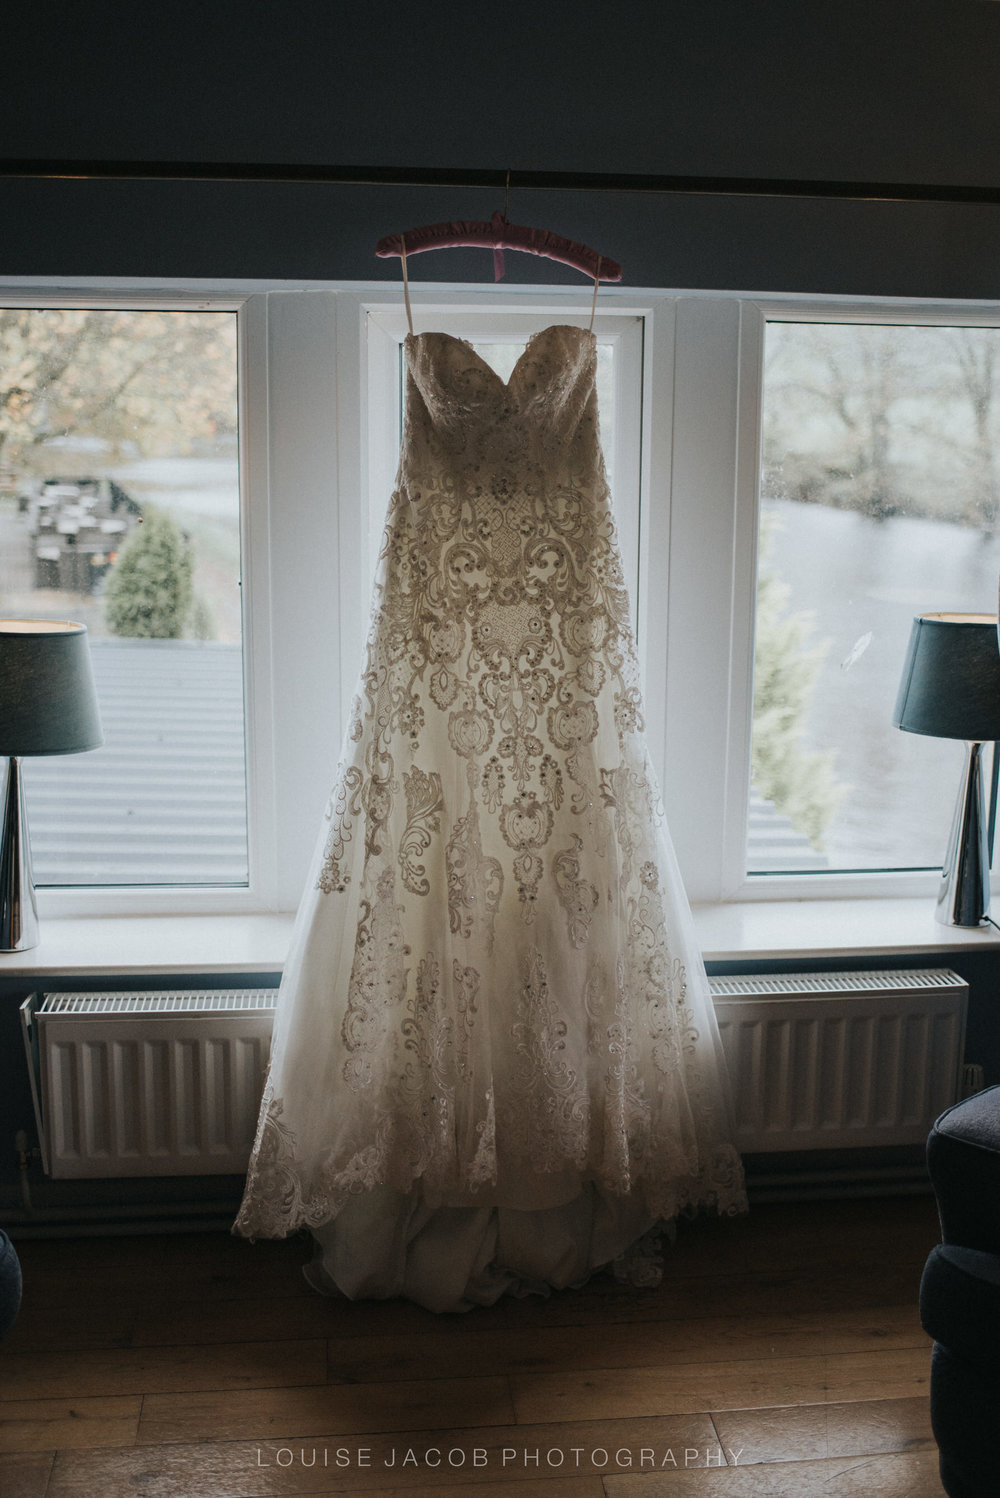 Documentary Wedding Photography - a wedding dress hanging in the window